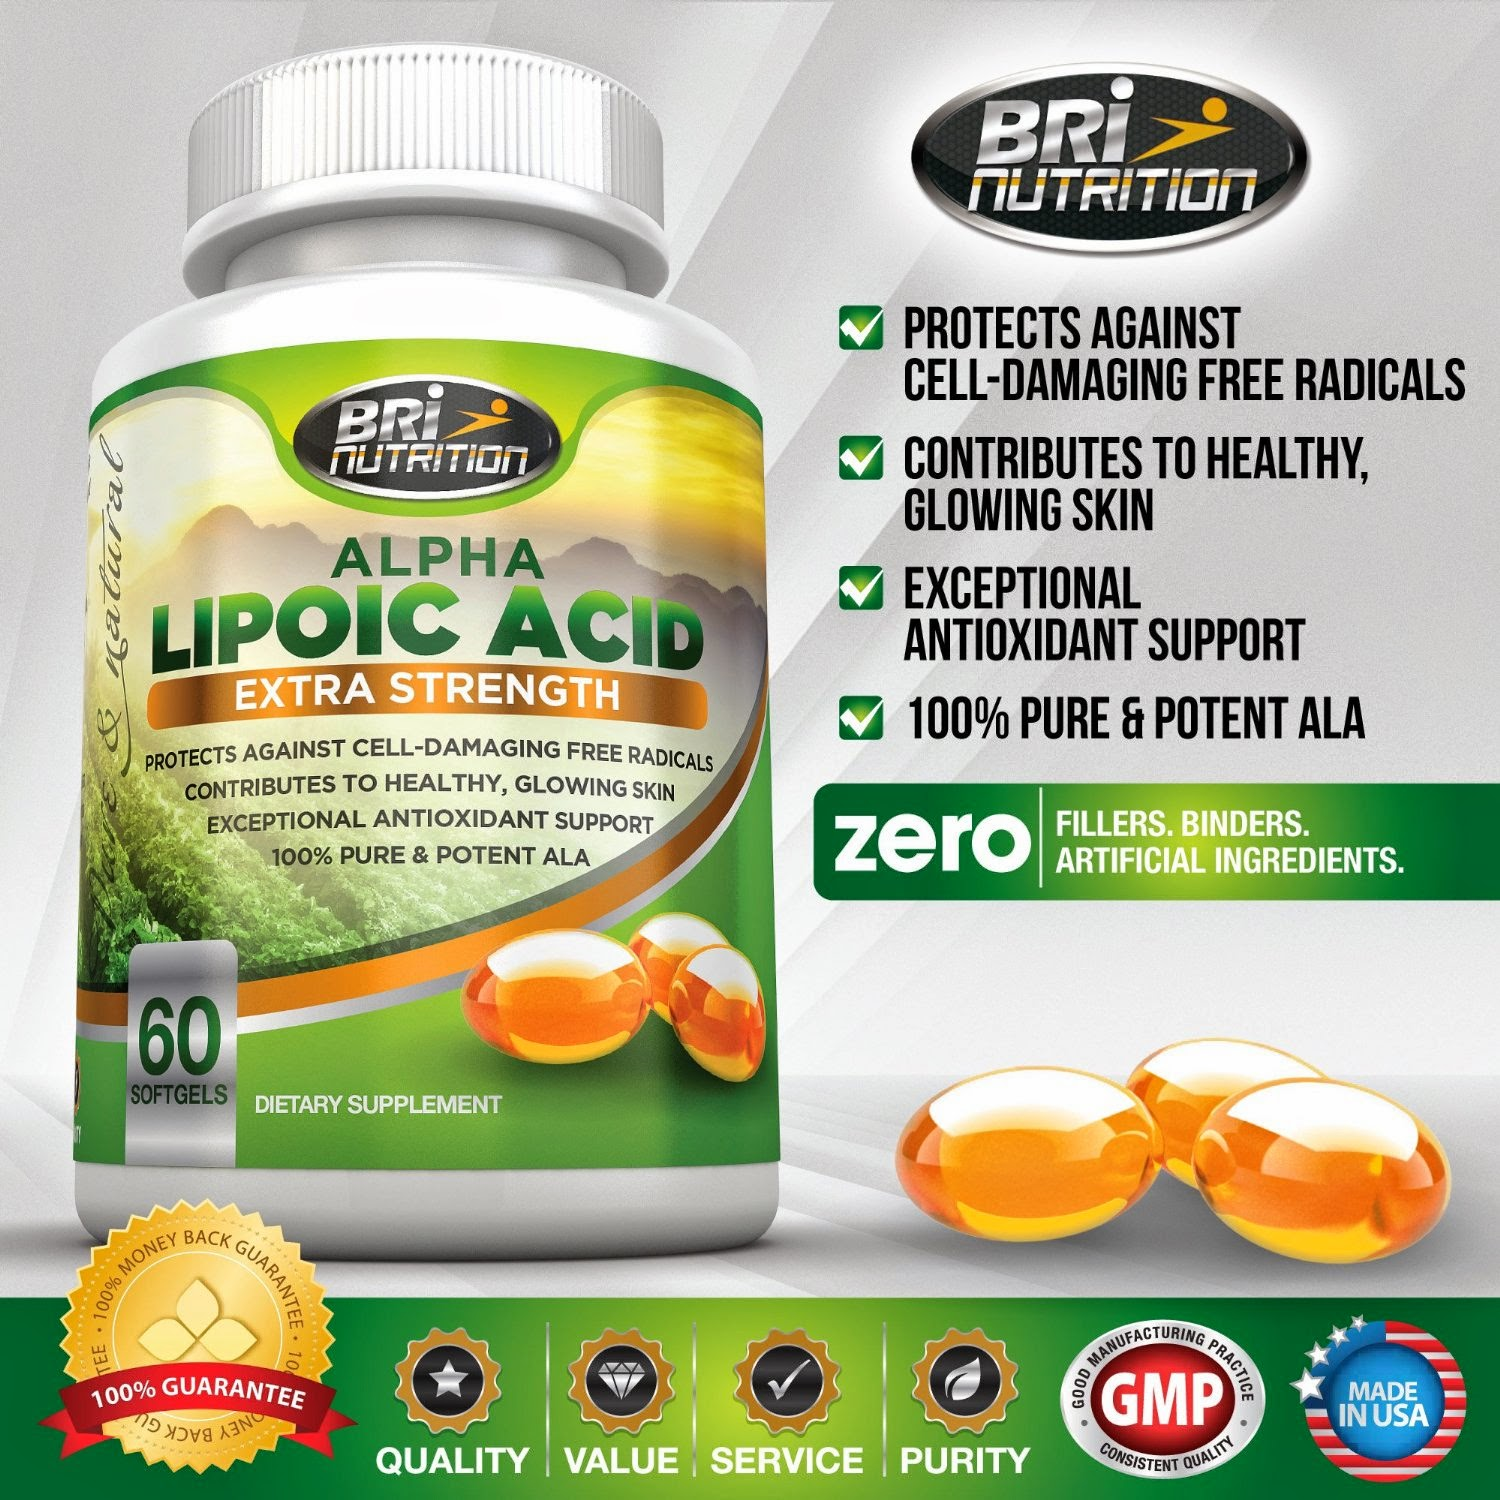 http://www.brinutrition.com/products/alpha-lipoic-acid-supplement